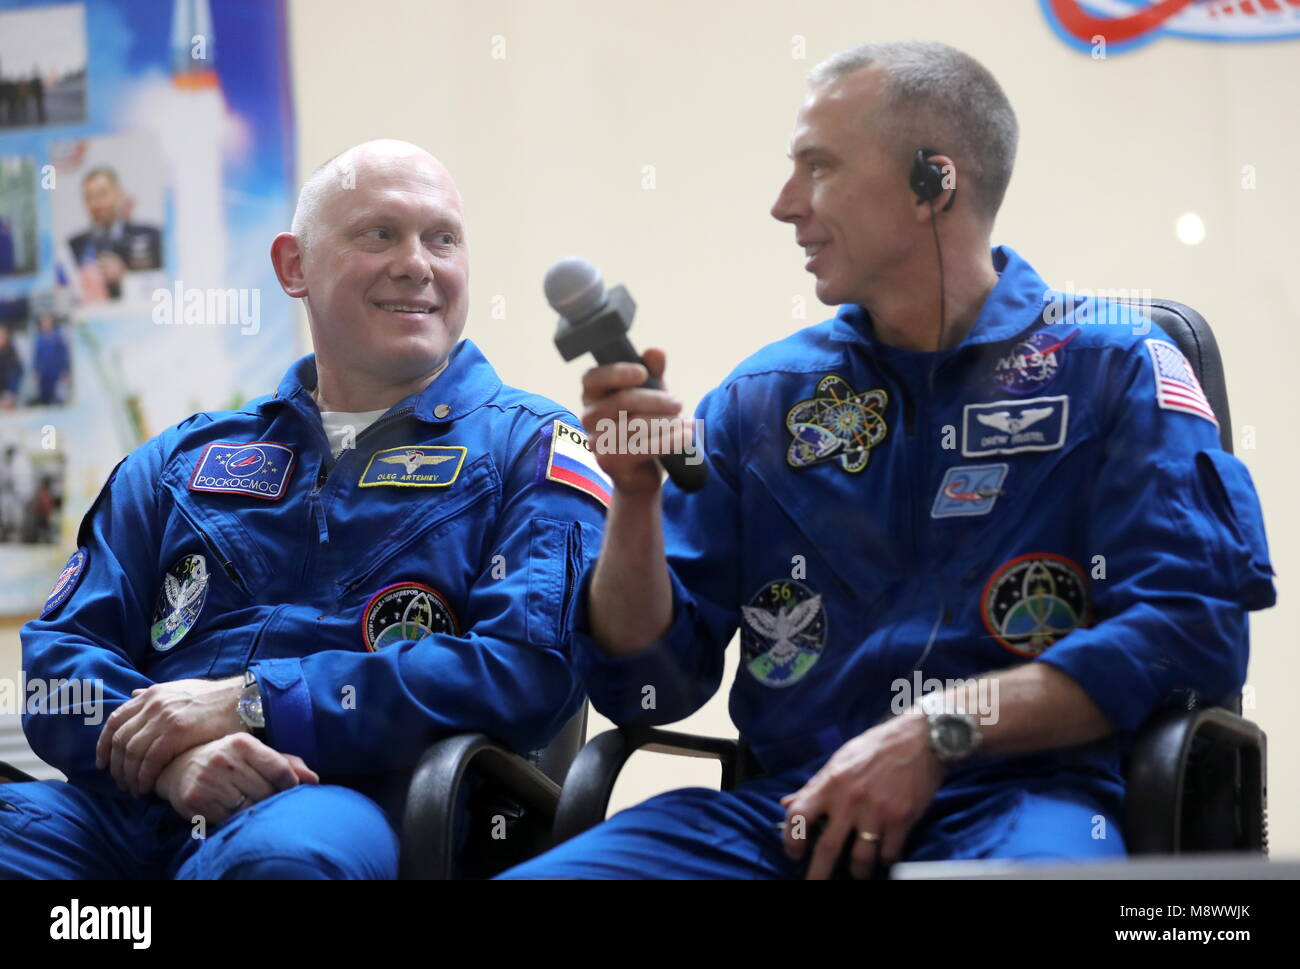 Baikonur, Kazakhstan. 20th Mar, 2018. BAIKONUR, KAZAKHSTAN - MARCH 20, 2018: ISS Expedition 55/56 prime crew members, - Stock Image